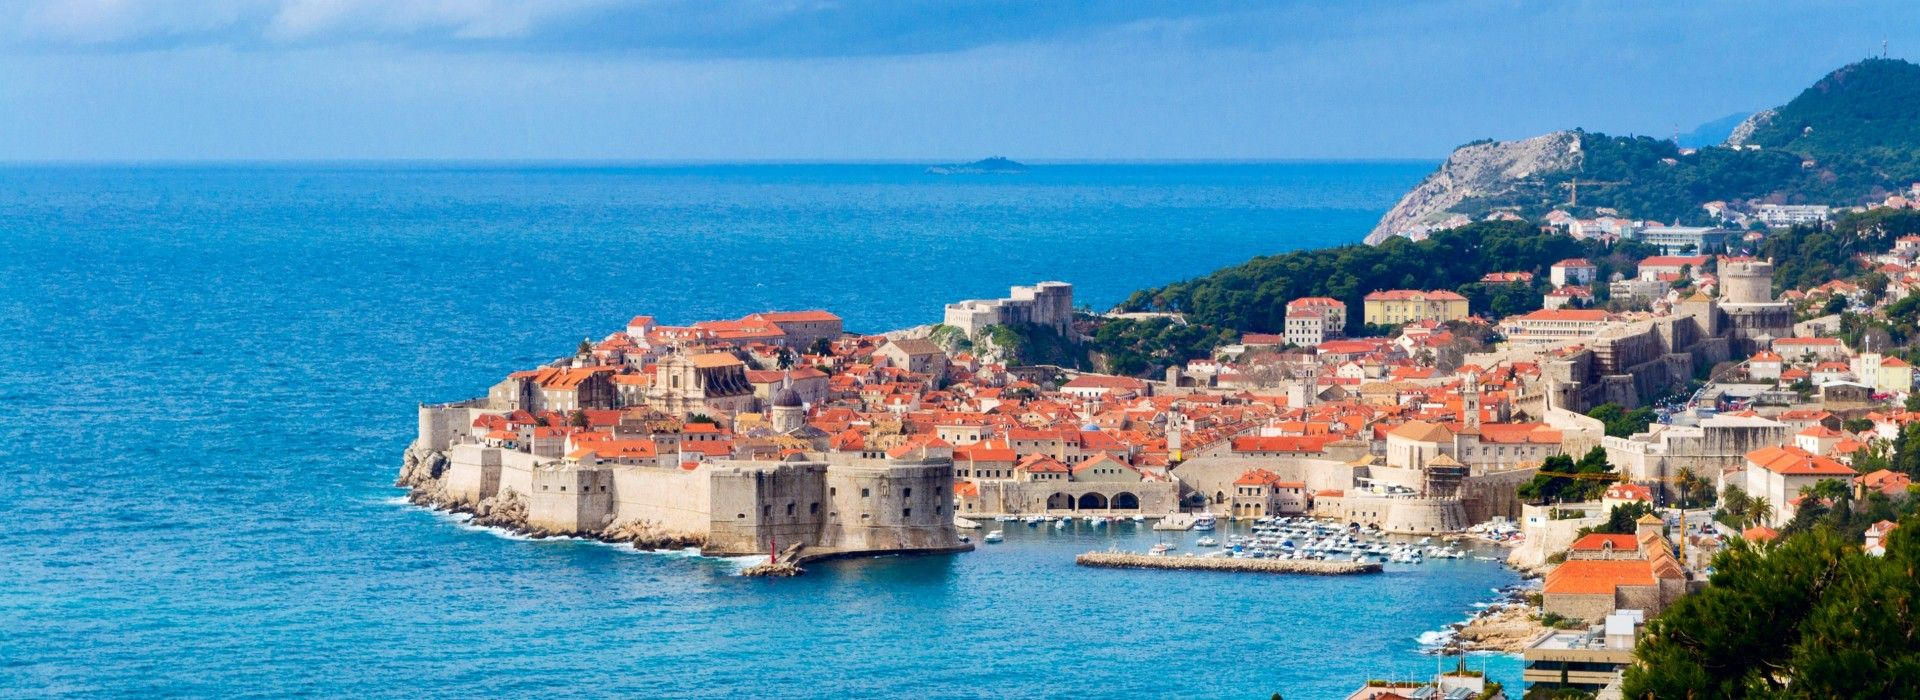 Boat tours, water sports and marine wildlife in Croatia